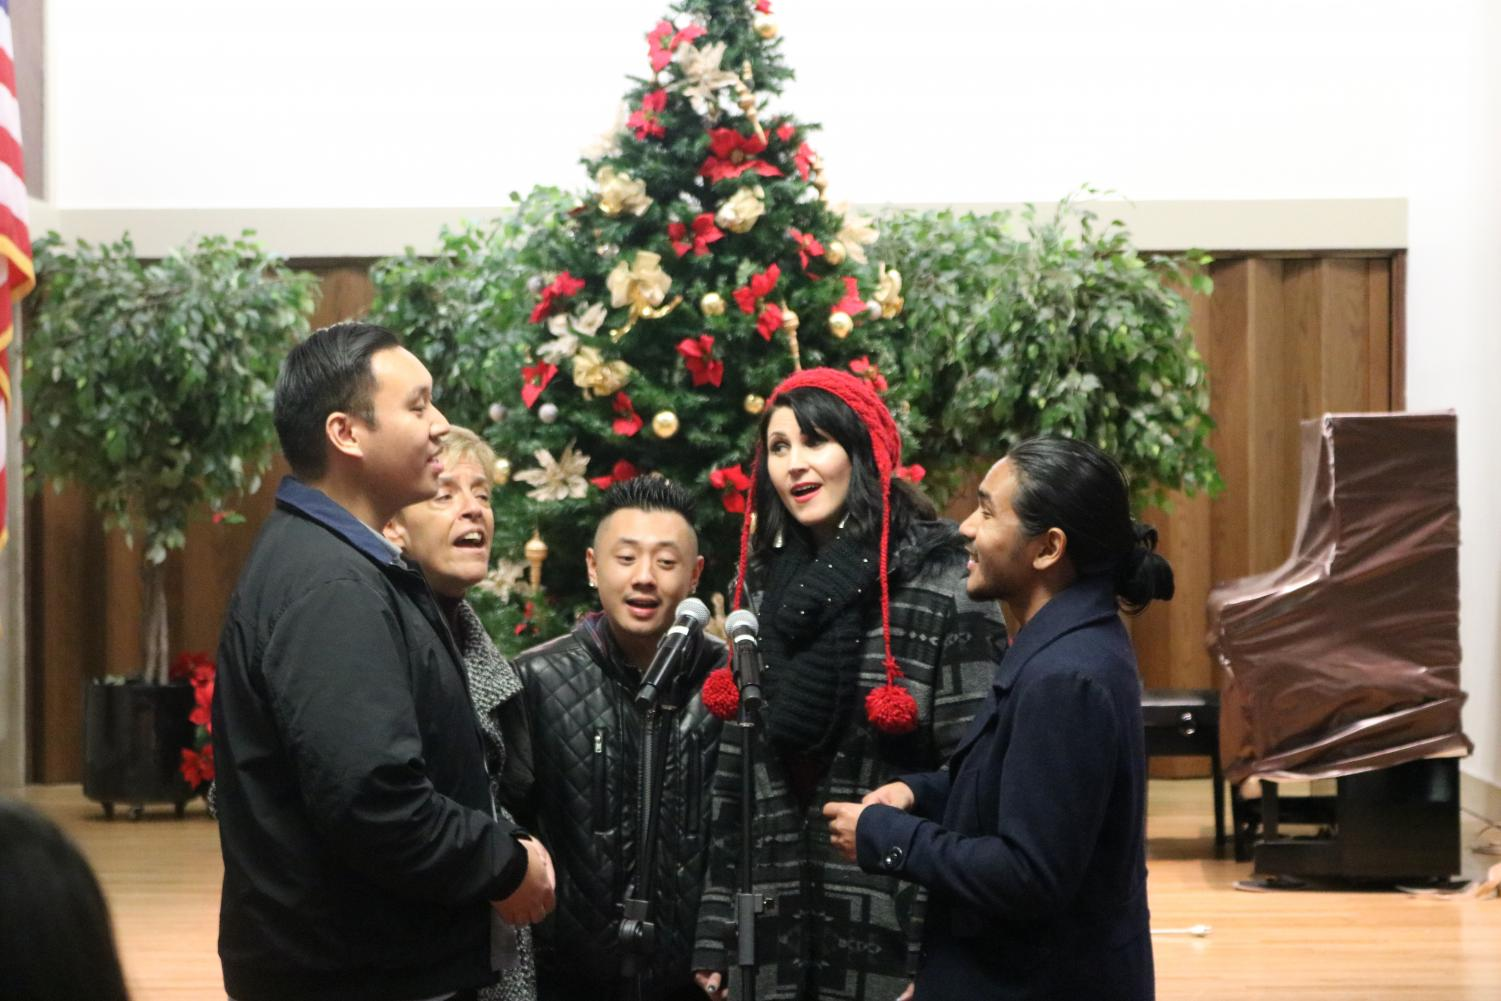 Jazzology tenor Joseph Saeteurn (left), alto Laura Karst (middle left), baritone Jesse Chao (middle), lead soprano Natasha Singer (middle right), and baritone Ninoangelo Lastimosa (right) sing during the San Pablo tree lighting on Friday.